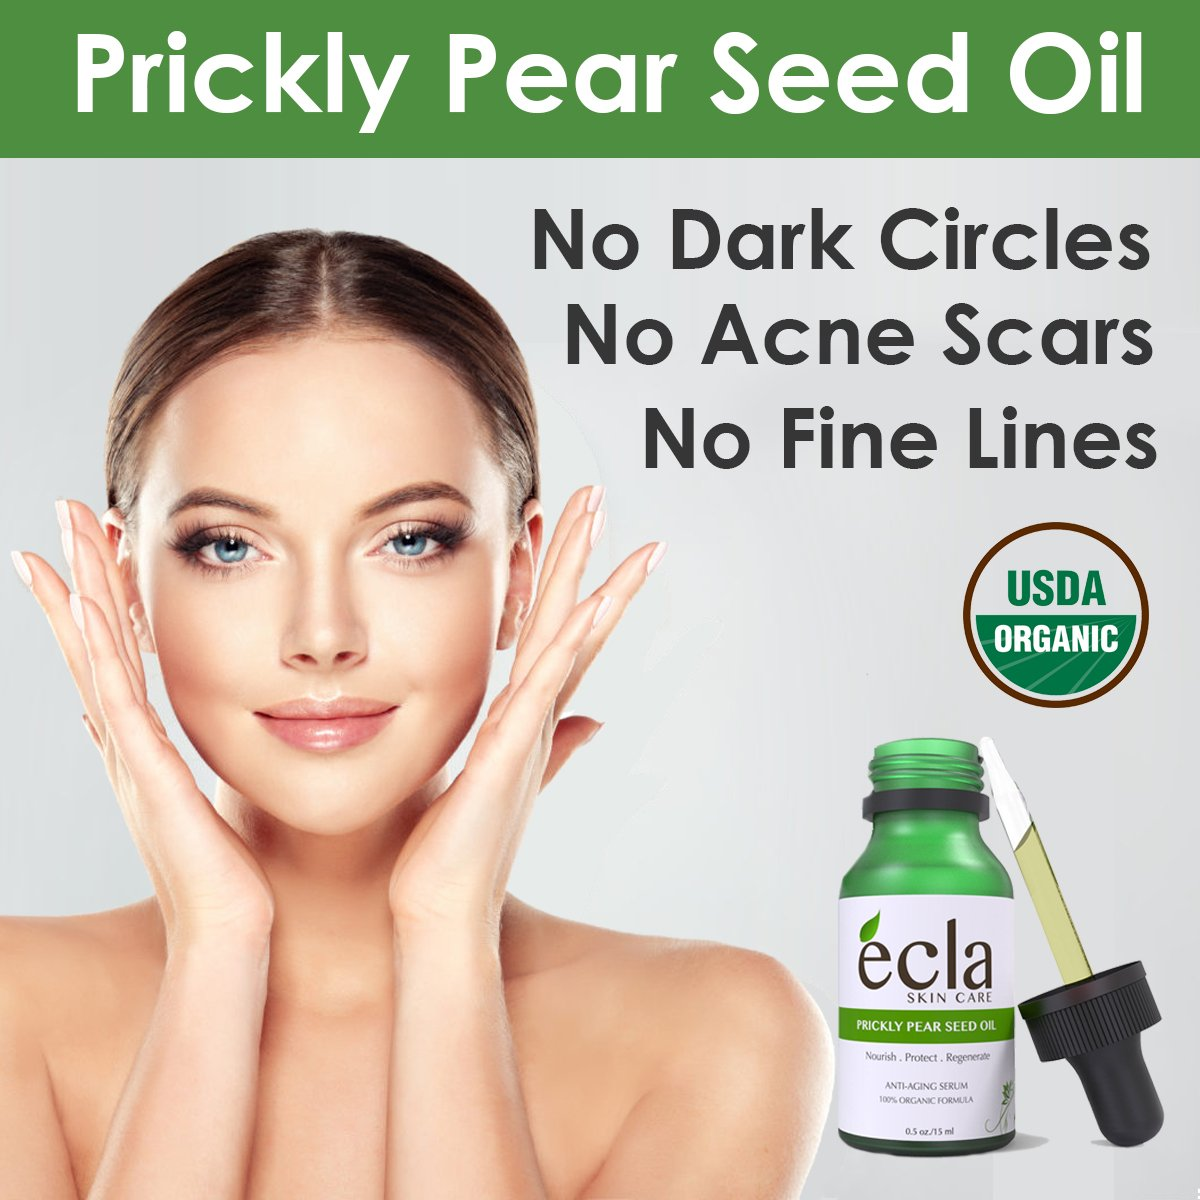 Amazon.com: Prickly Pear Seed Oil (Barbary Fig Cactus Oil) - 100% Pure  Certified Organic Anti-aging Night Serum, Facial Moisturizer (0.5 fl oz)  Natural ...